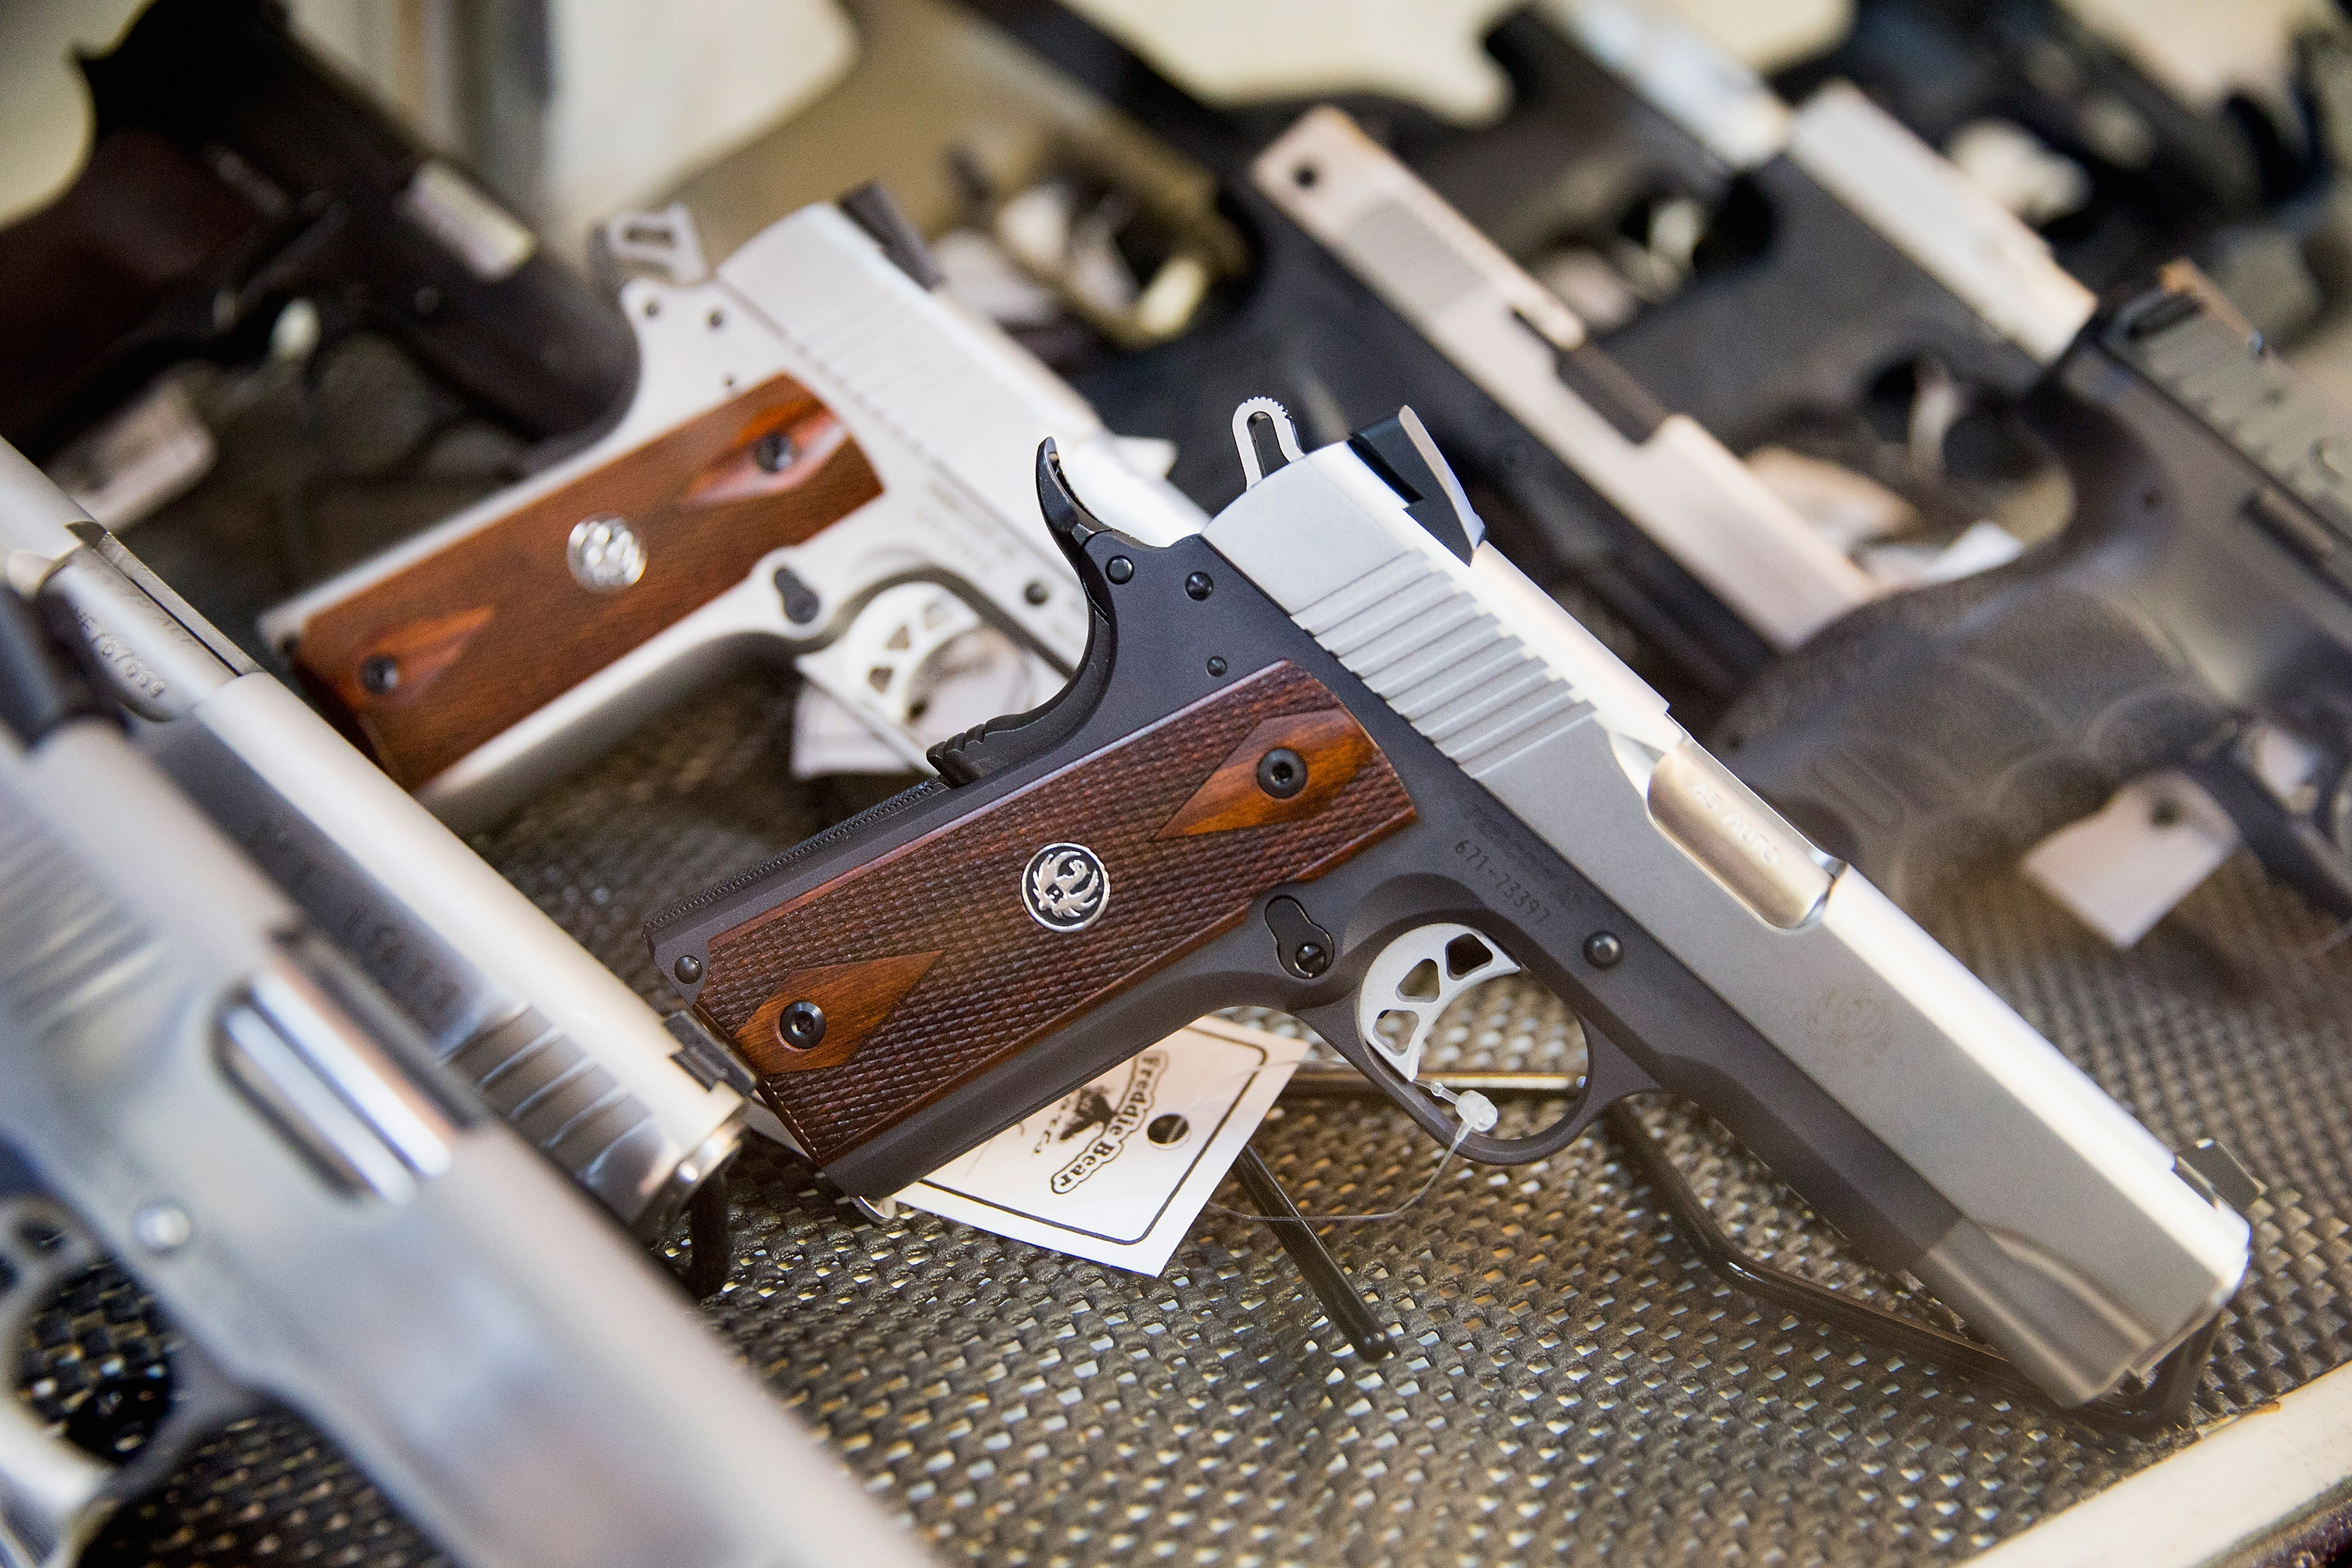 Handguns for sale in Illinois in 2015.